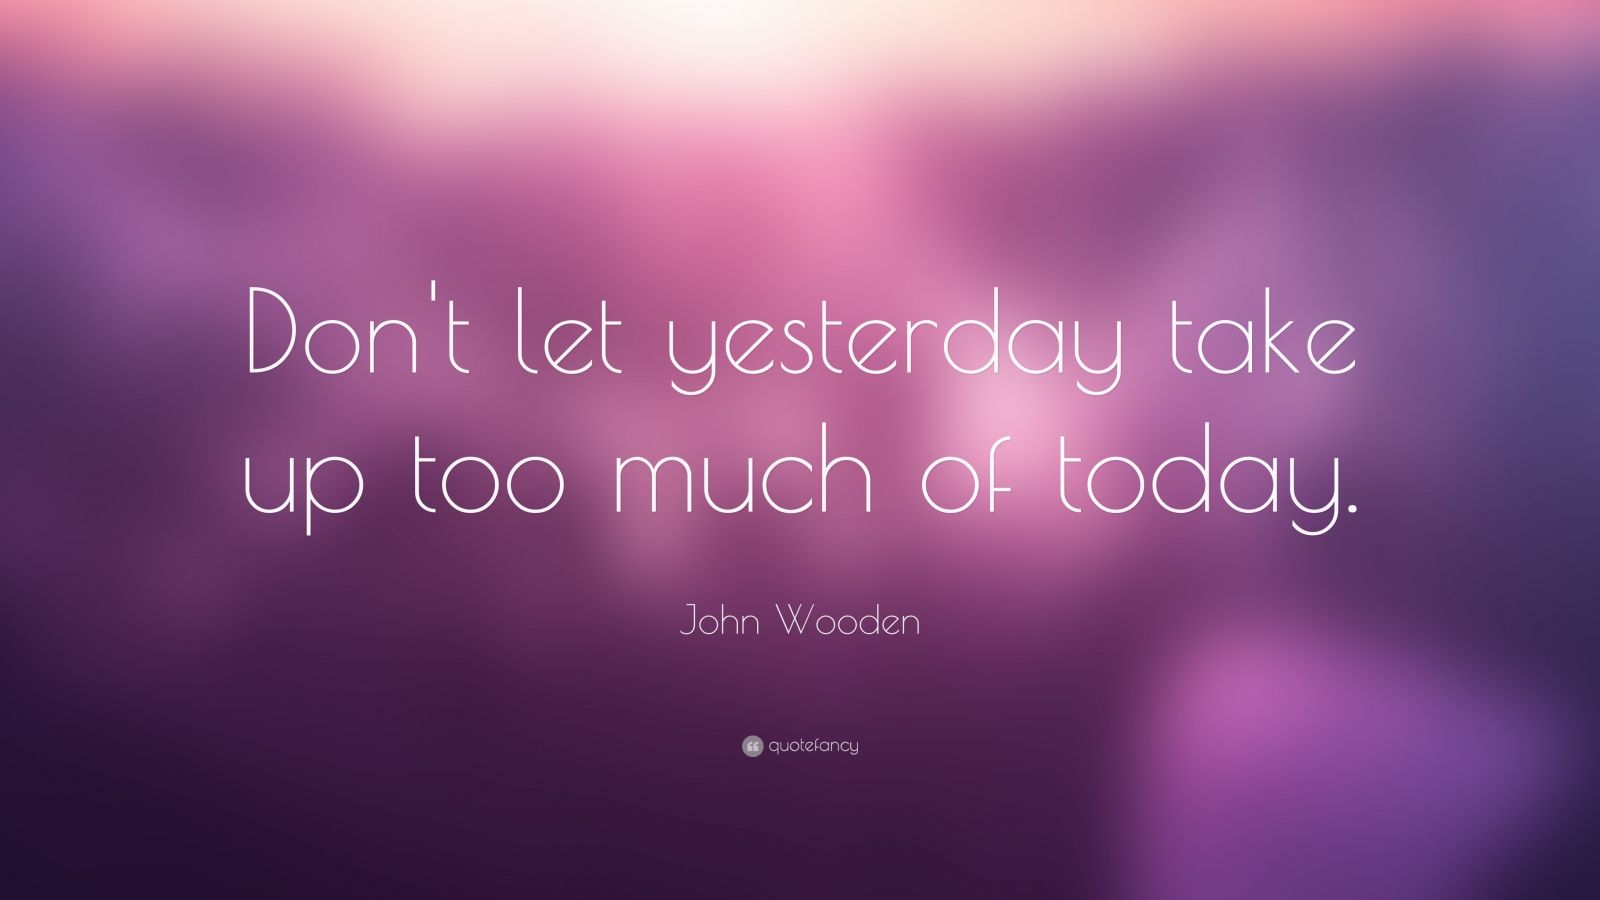 Theodore Roosevelt Quotes Wallpaper John Wooden Quote Don T Let Yesterday Take Up Too Much